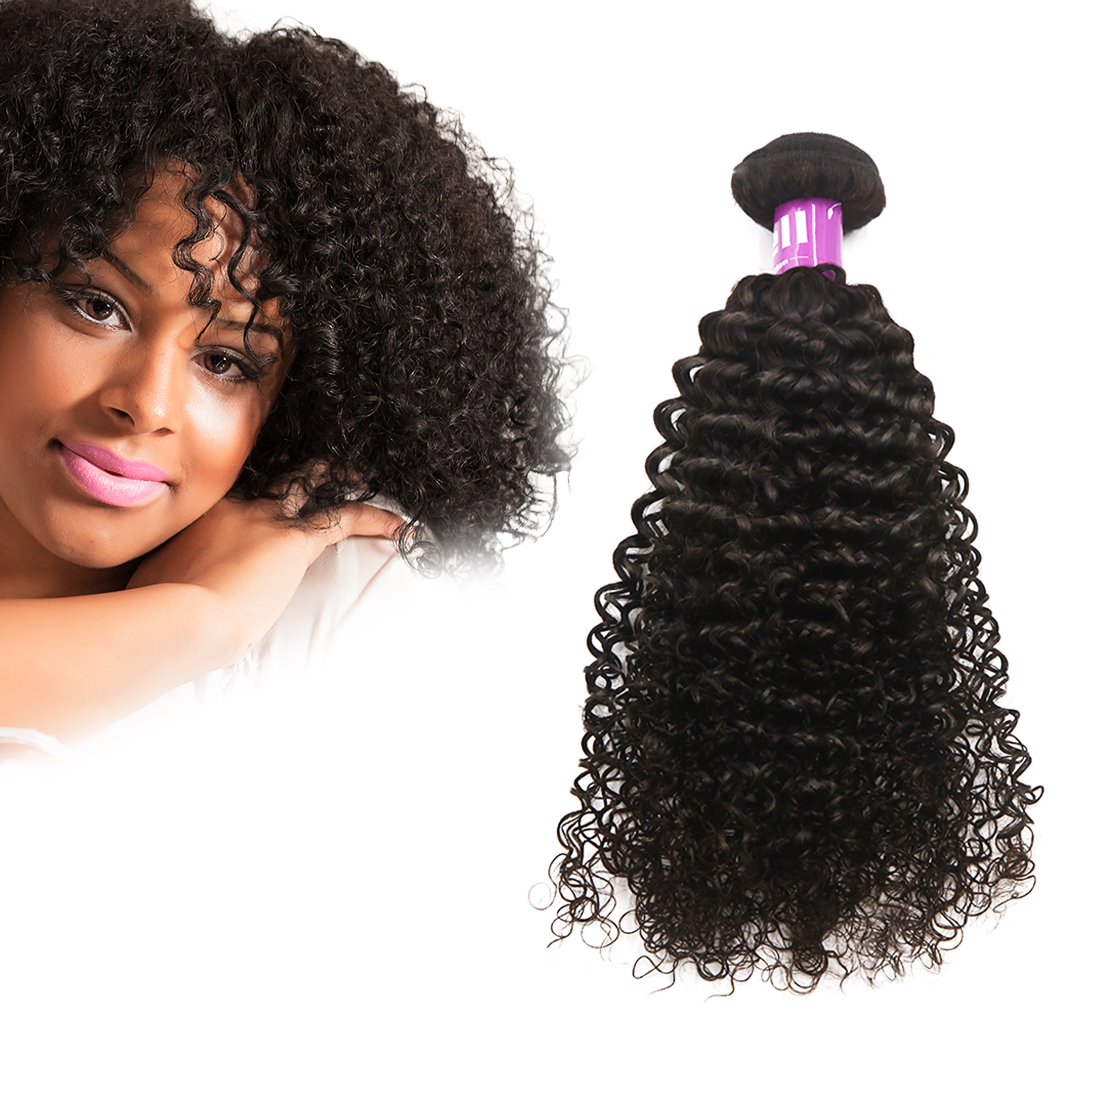 "Peruvian Unprocessed Virgin Italian Curly Human Hair Extensions Wave 14"" 1 Bundle"